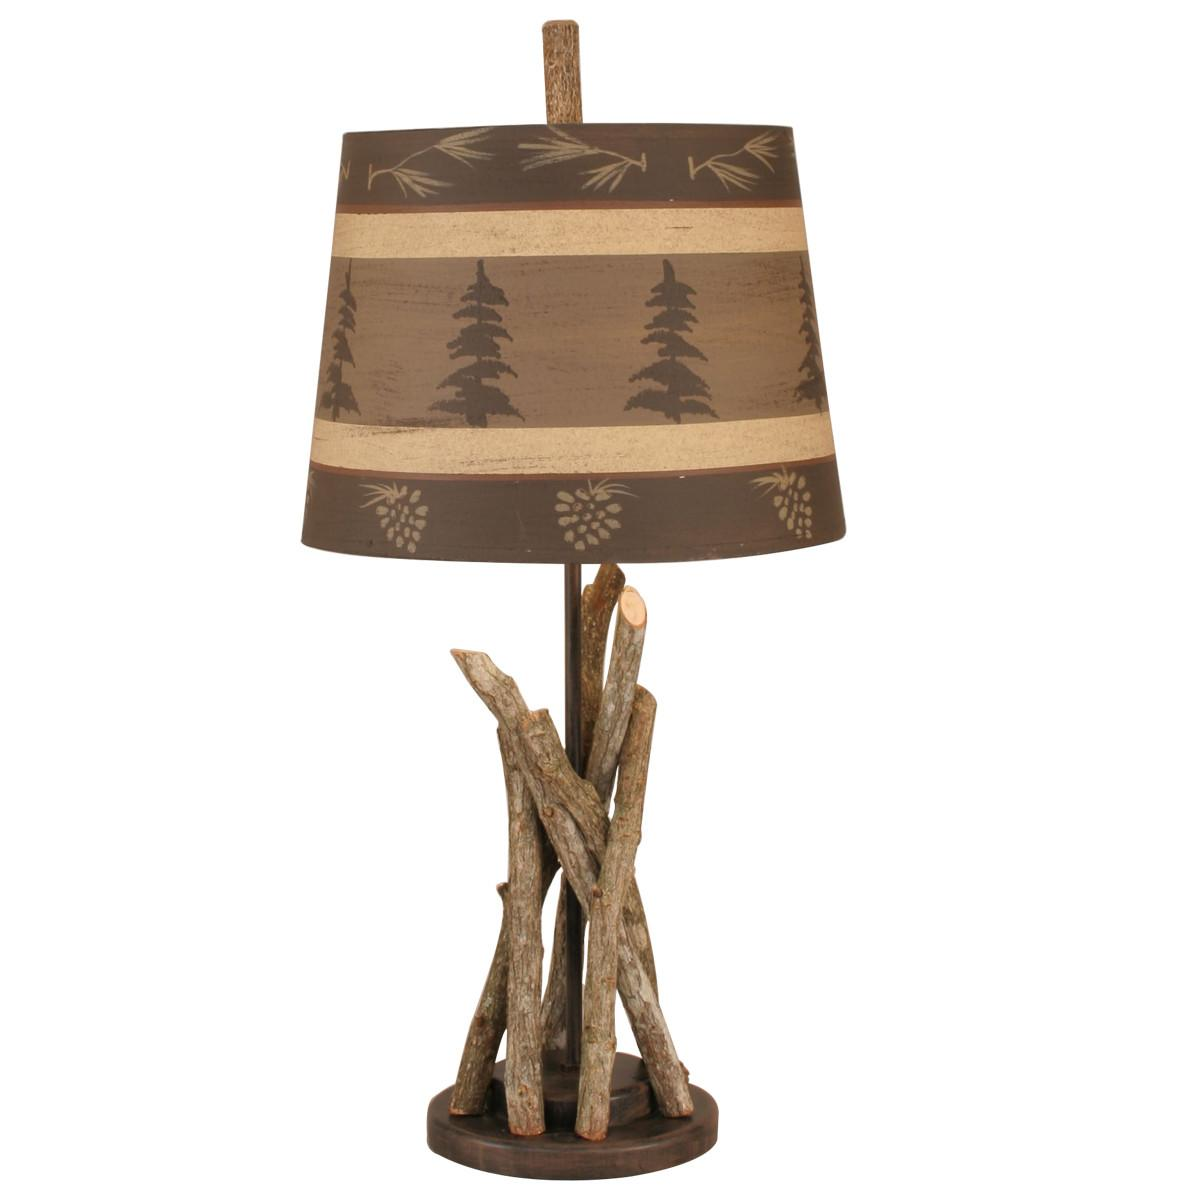 Campfire Accent Lamp Tree Pine Cone Shade